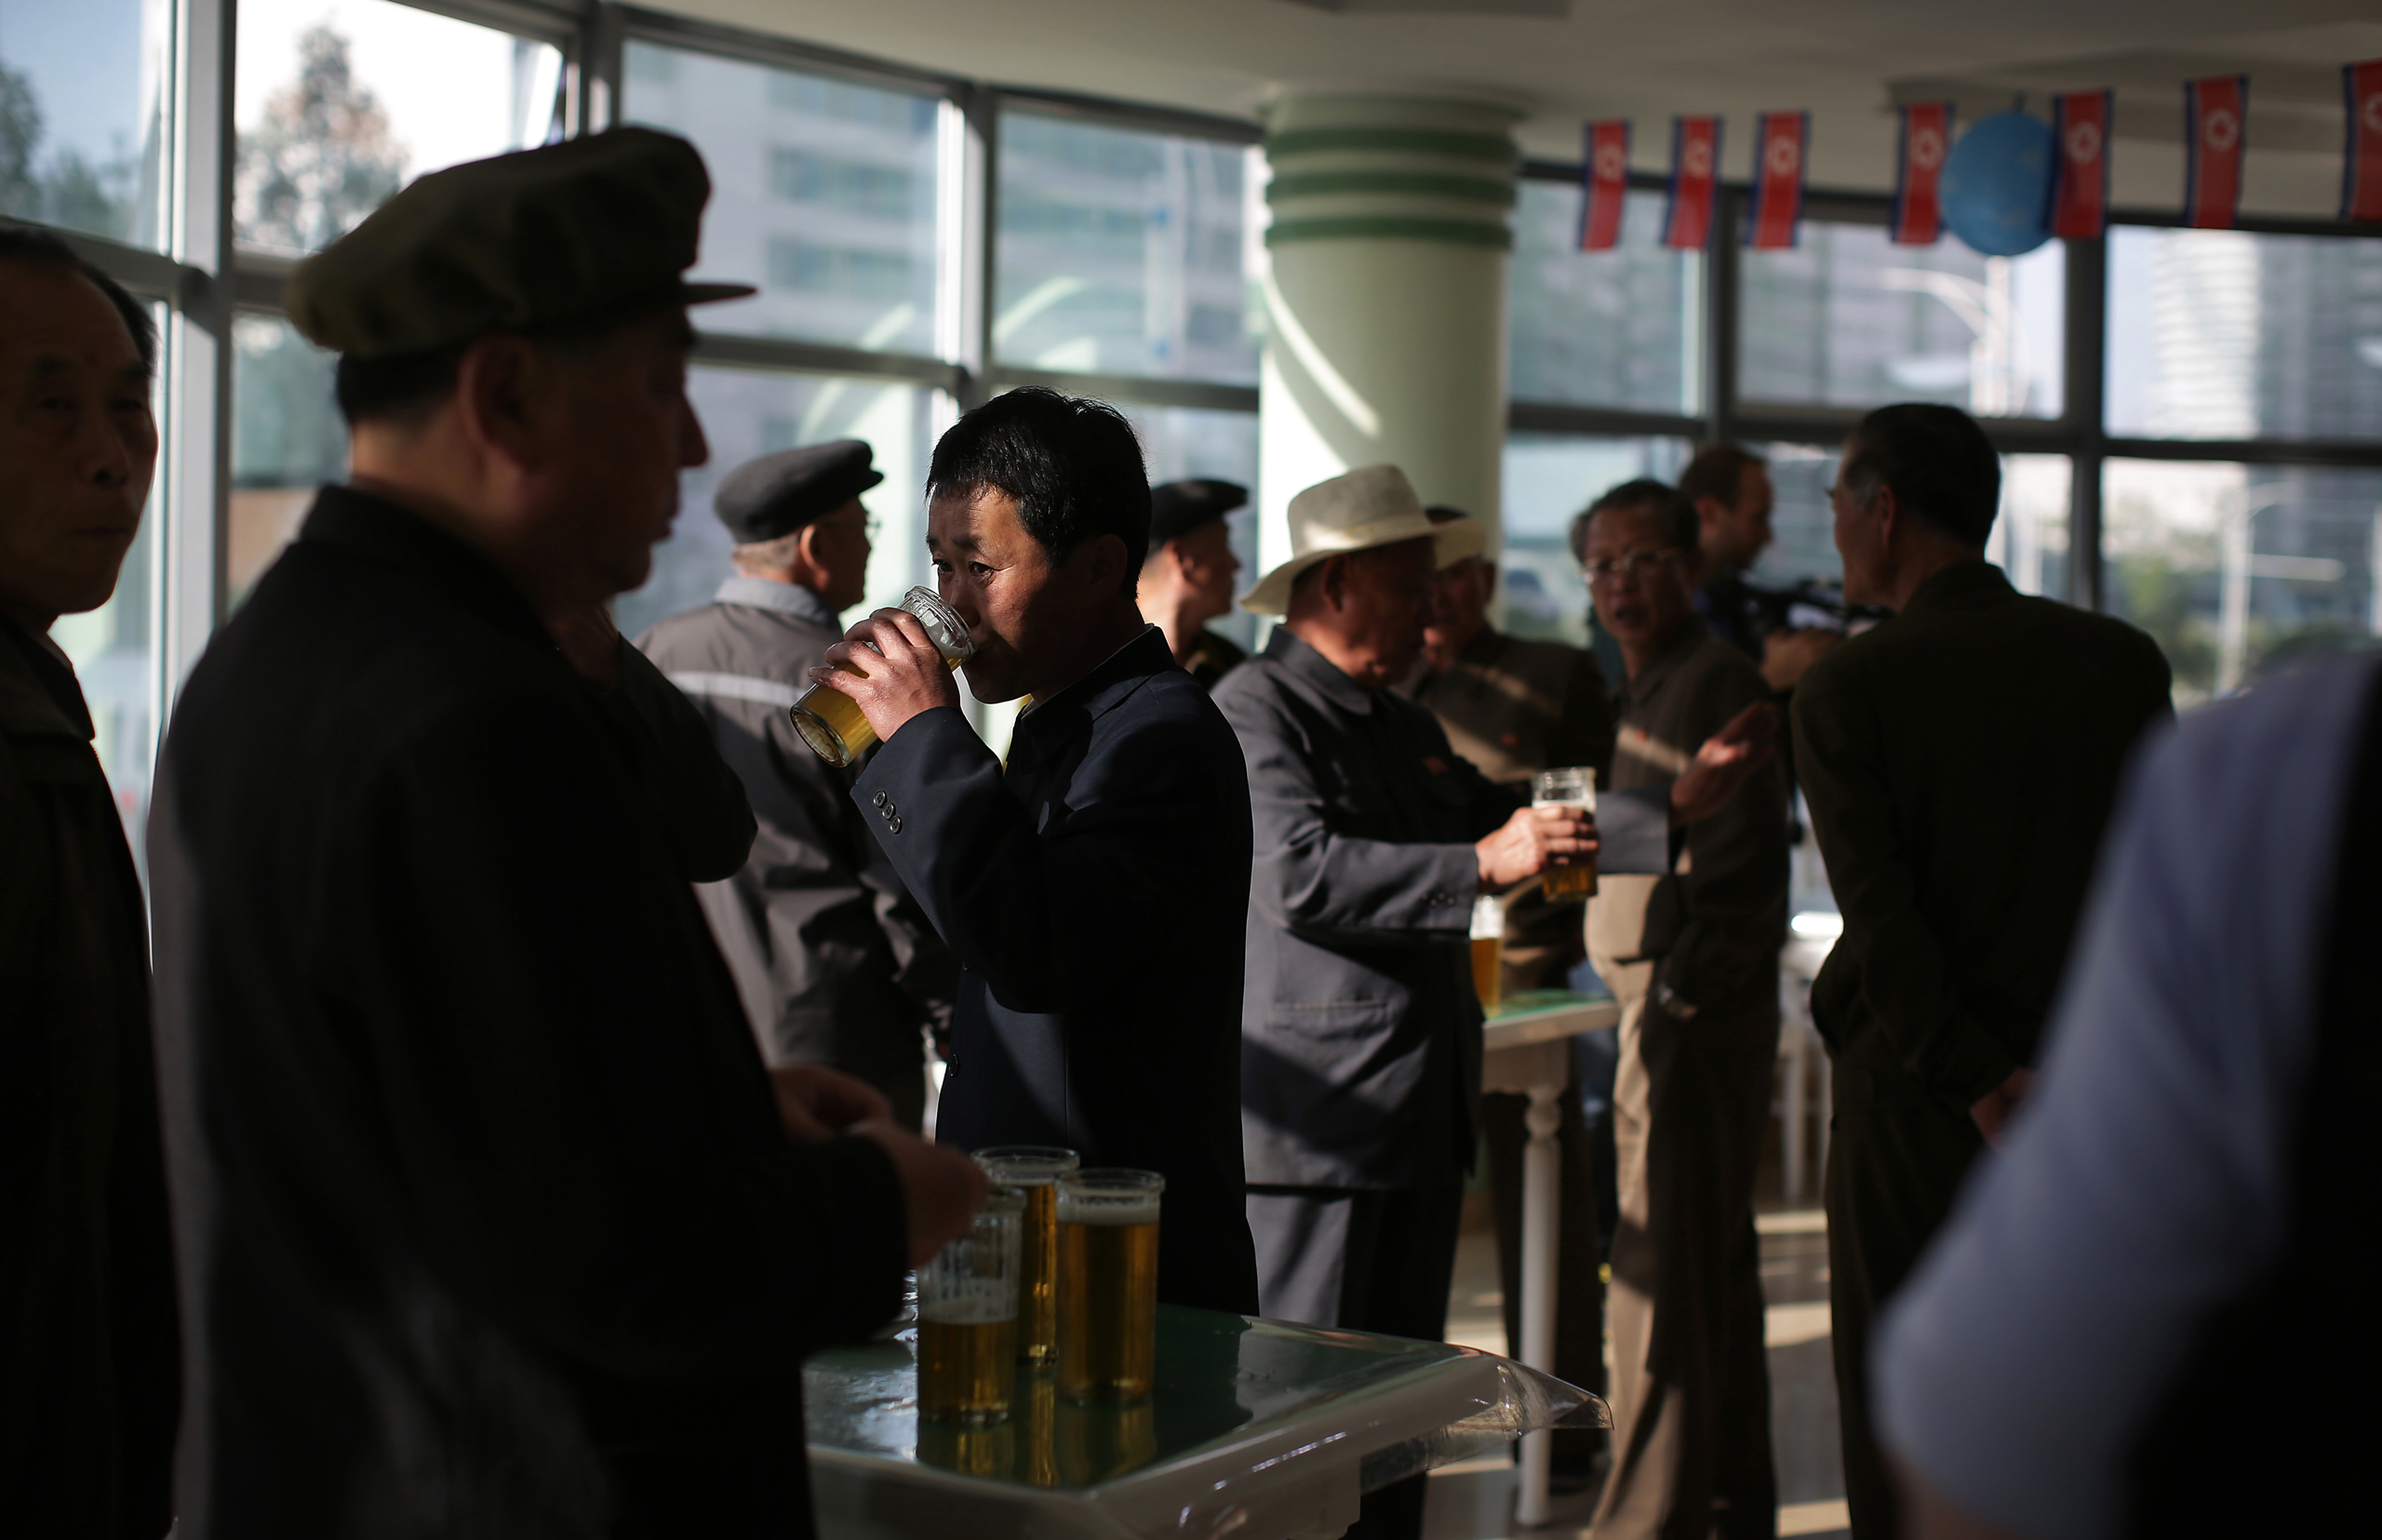 North Korean men drink beer at the Taedonggang Beer shop in Pyongyang, on May 7, 2016. Ahead of the ongoing congress of North Korea's ruling Workers' Party, the first in decades, the nation was called upon to do massive overtime to boost production and show their devotion to leader Kim Jong Un in a 70-day  loyalty campaign.